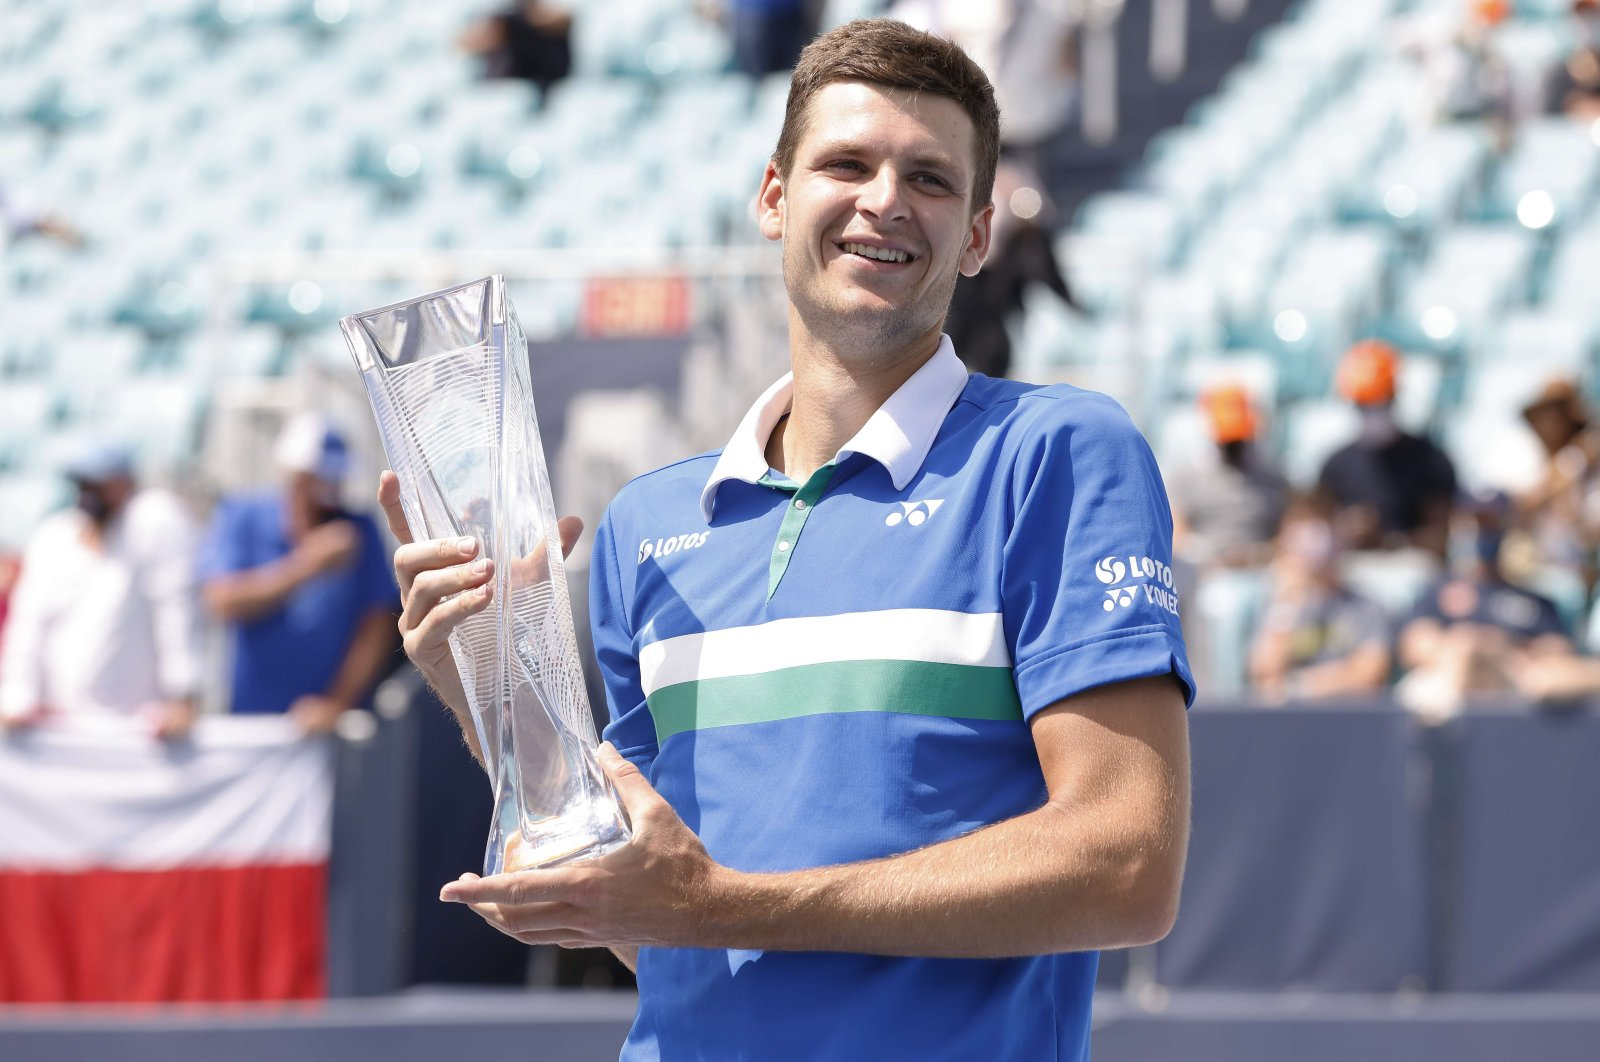 Poland's Hubert Hurkacz poses with the Miami Open trophy after beating Italy's Jannik Sinner in the final at Hard Rock Stadium, Miami Gardens, Florida, April 04, 2021. (AFP Photo)